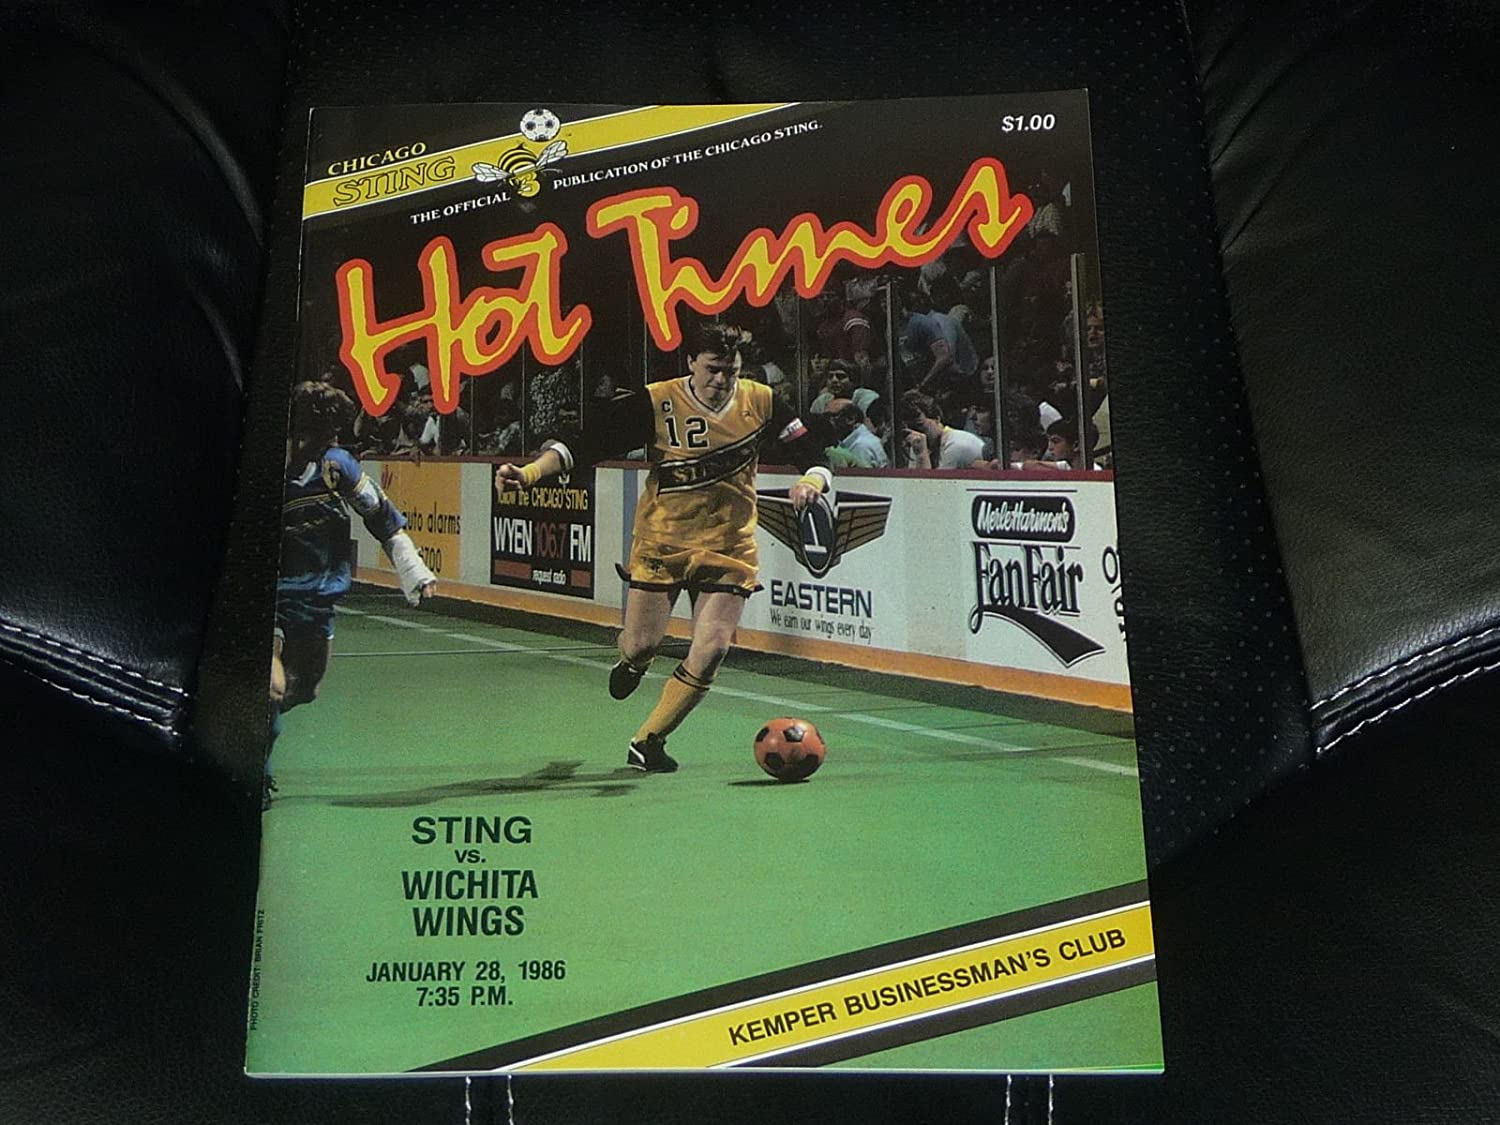 JAN 28, 1986 WICHITA WINGS AT CHICAGO STING MISL SOCCER PROGRAM NR MINT